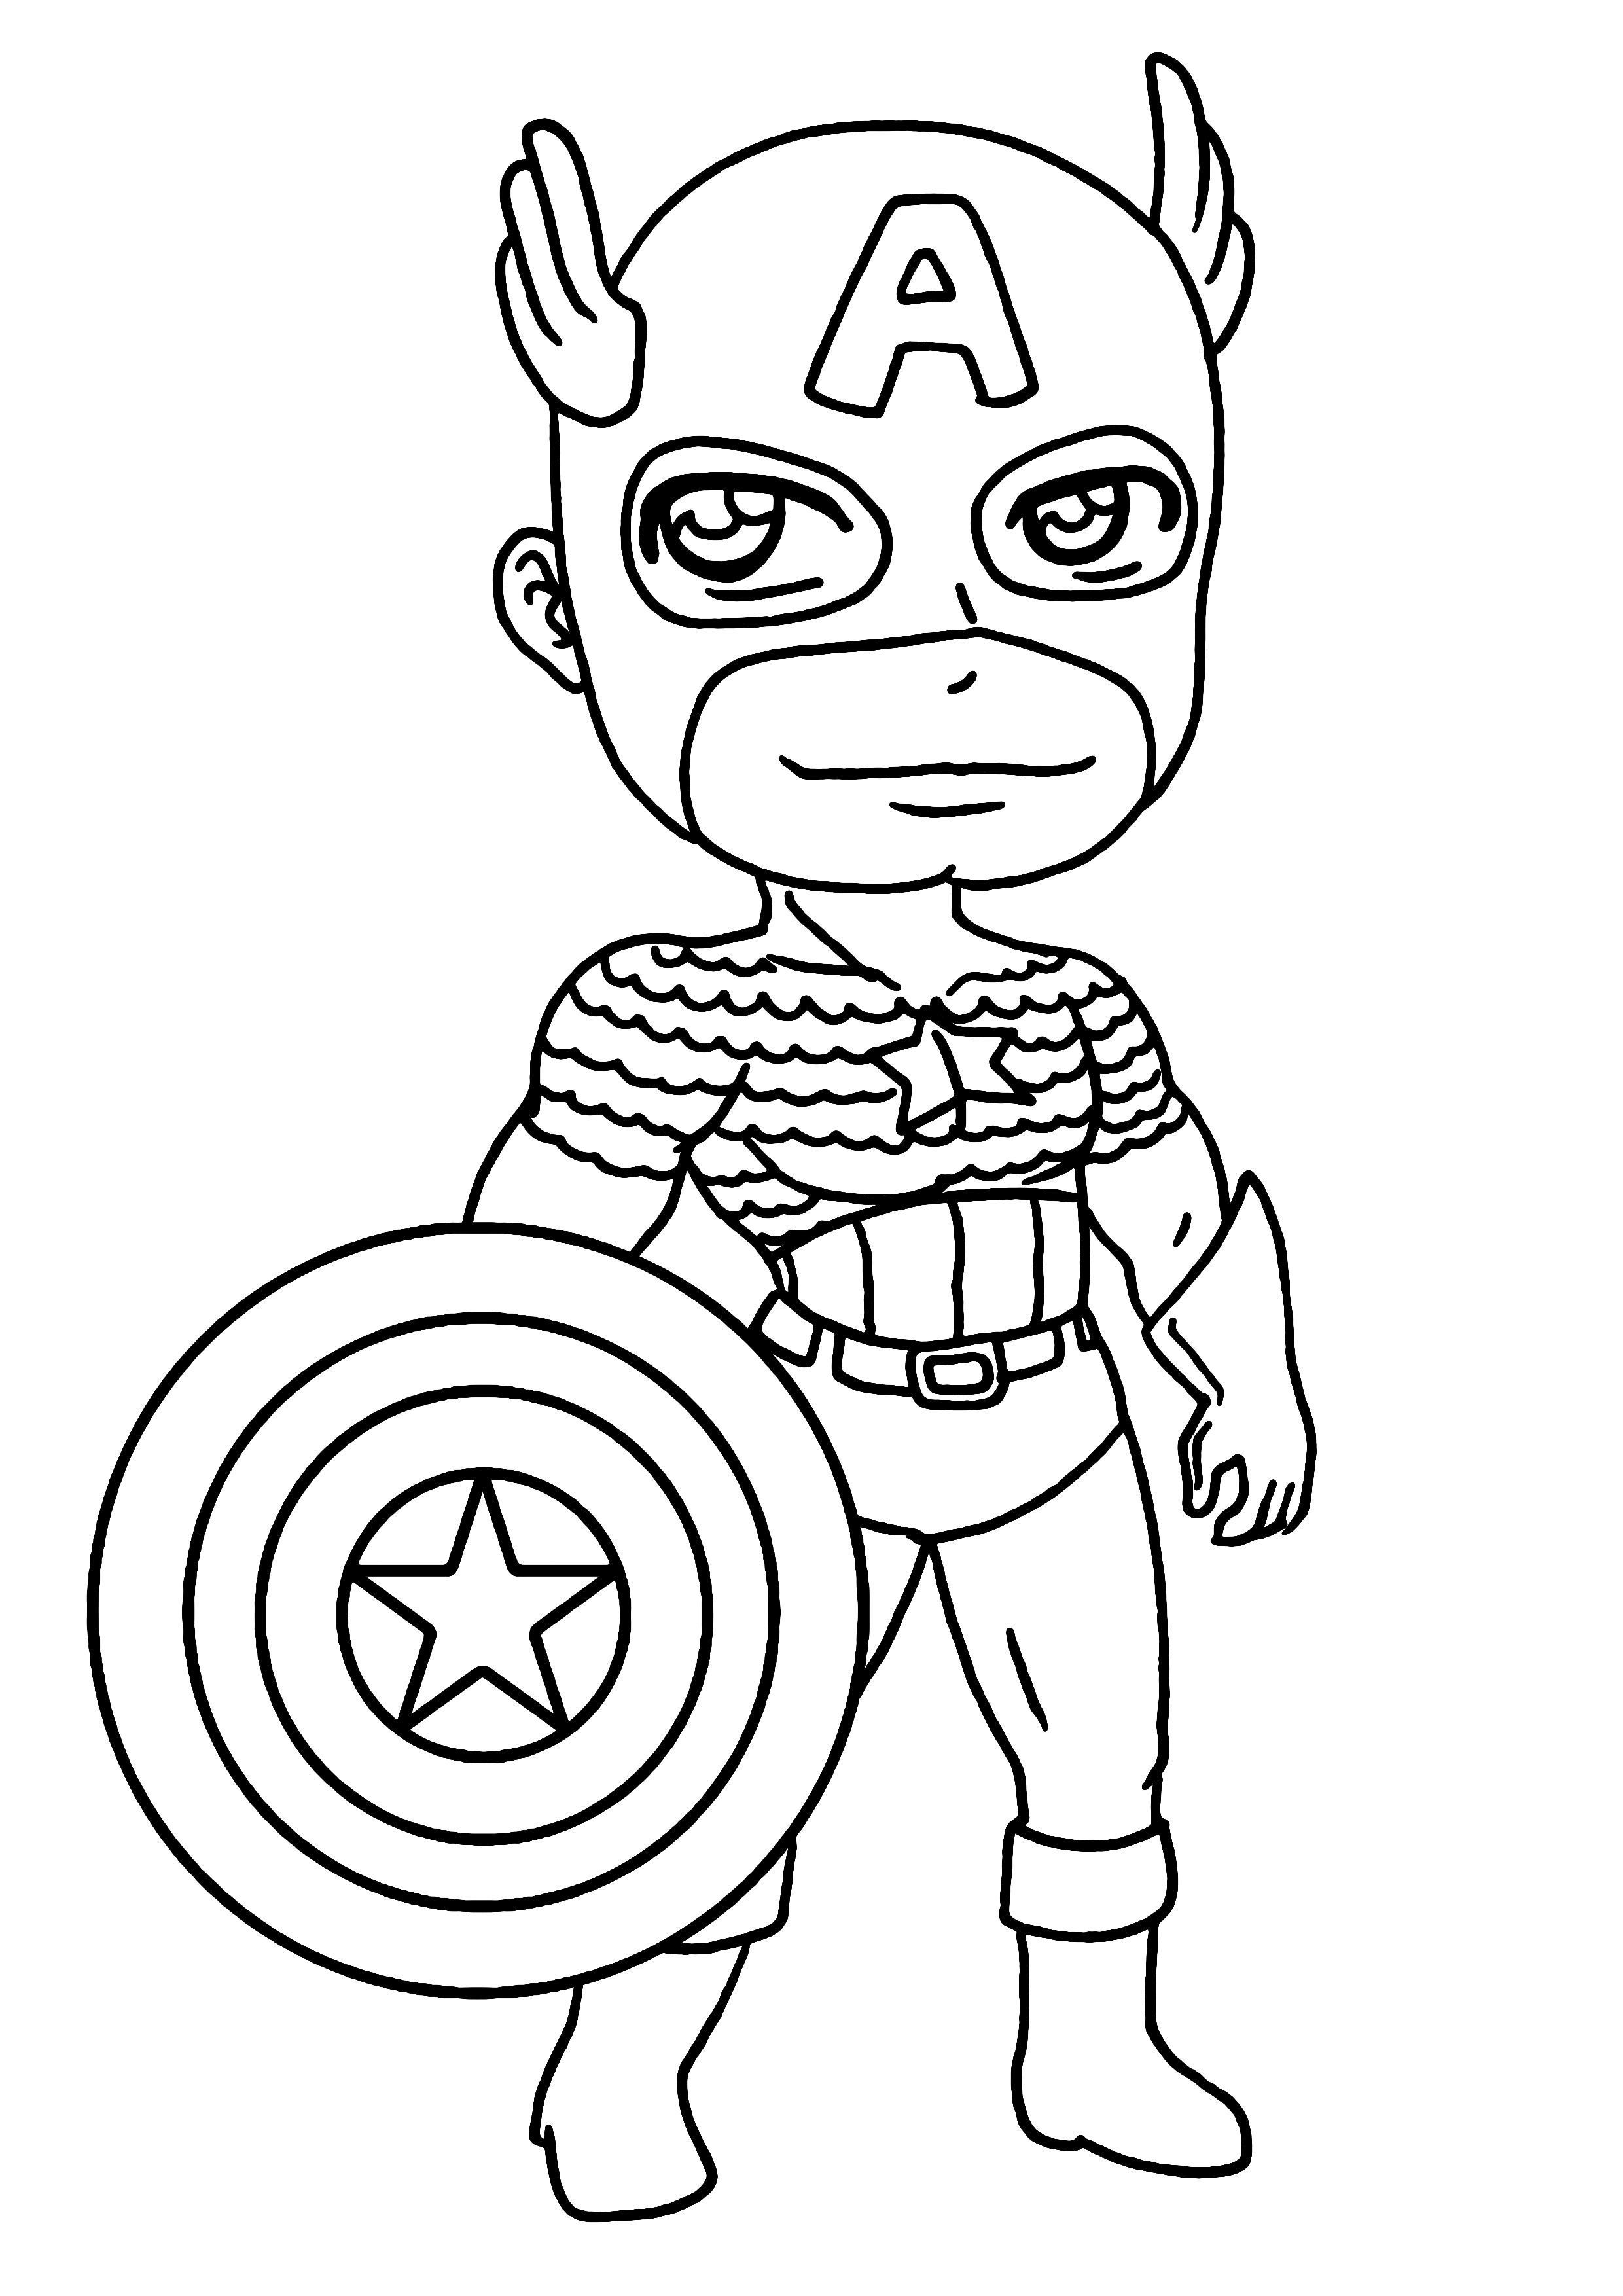 Coloriages Super Heros